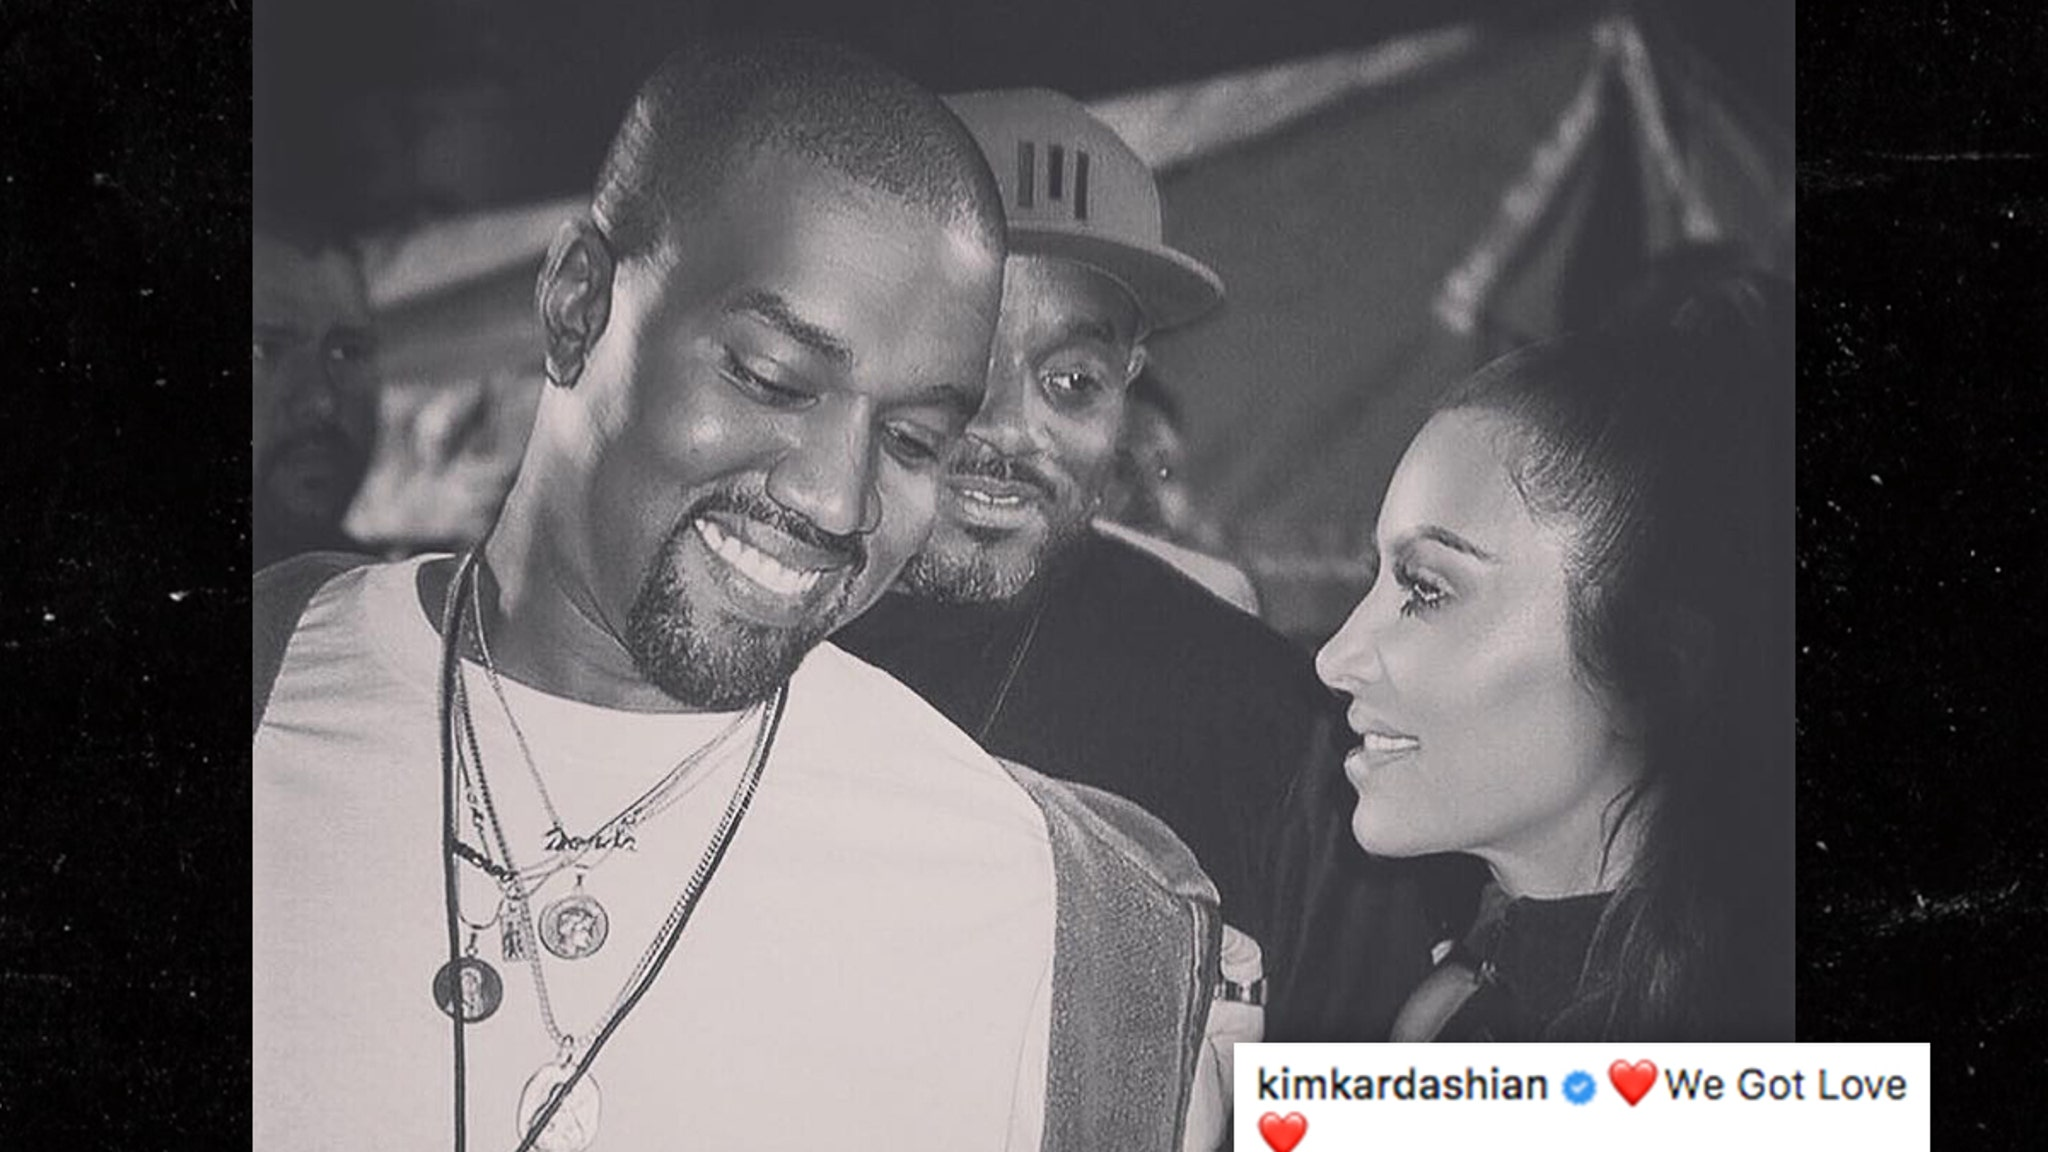 Kim Kardashian Sued for Stealing Pic of Kim and Kanye